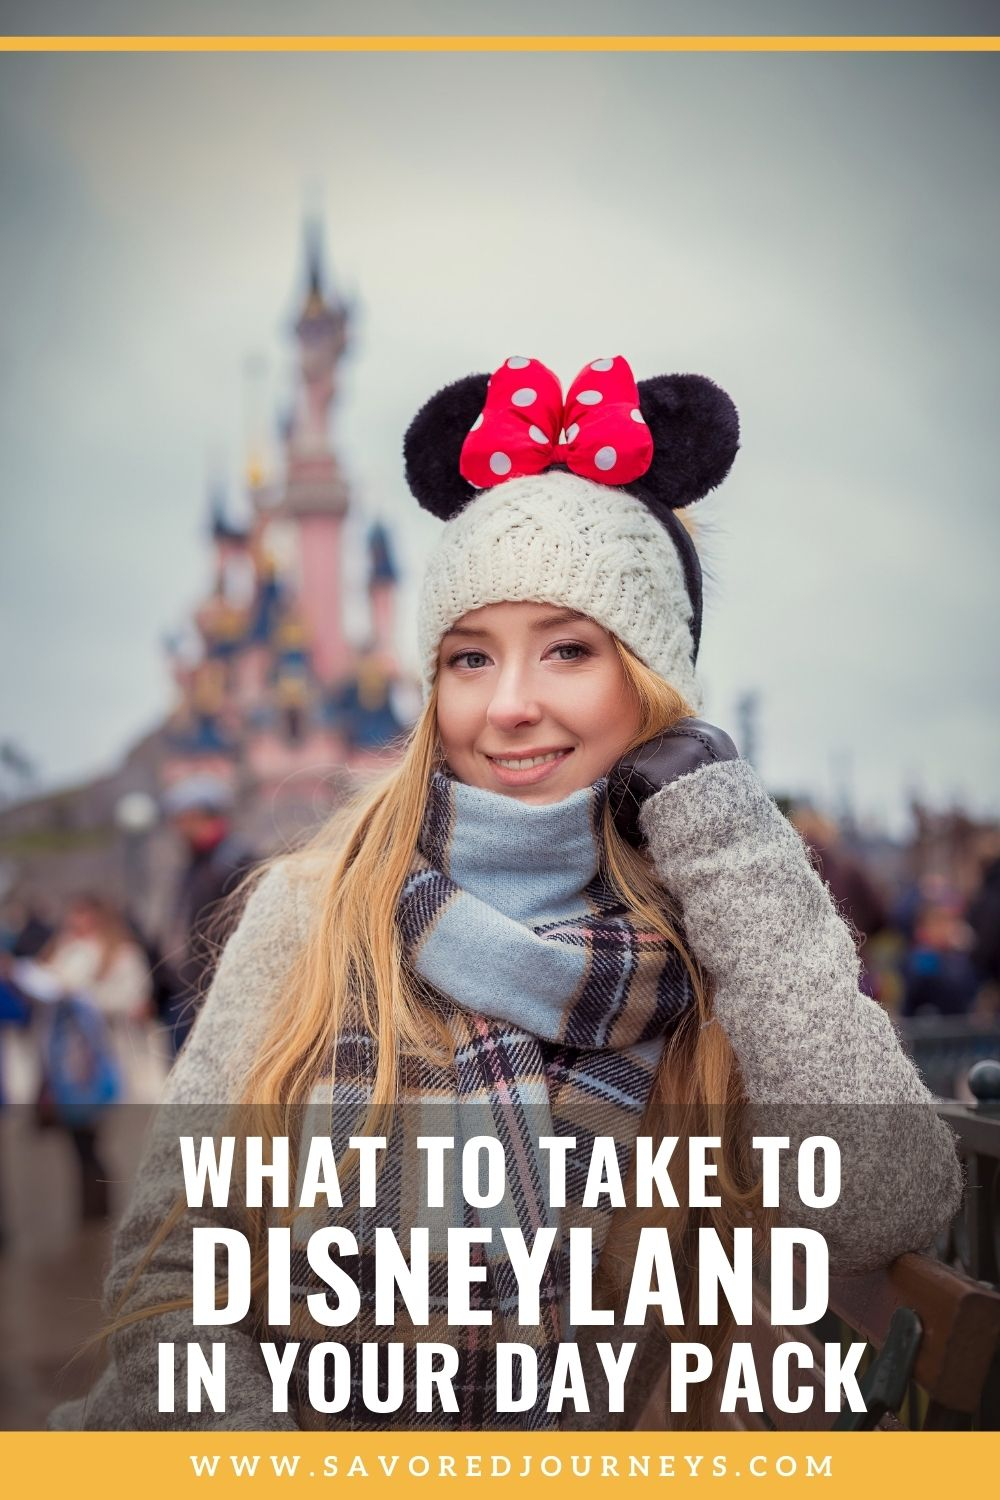 What to Bring to Disneyland in your Day Pack